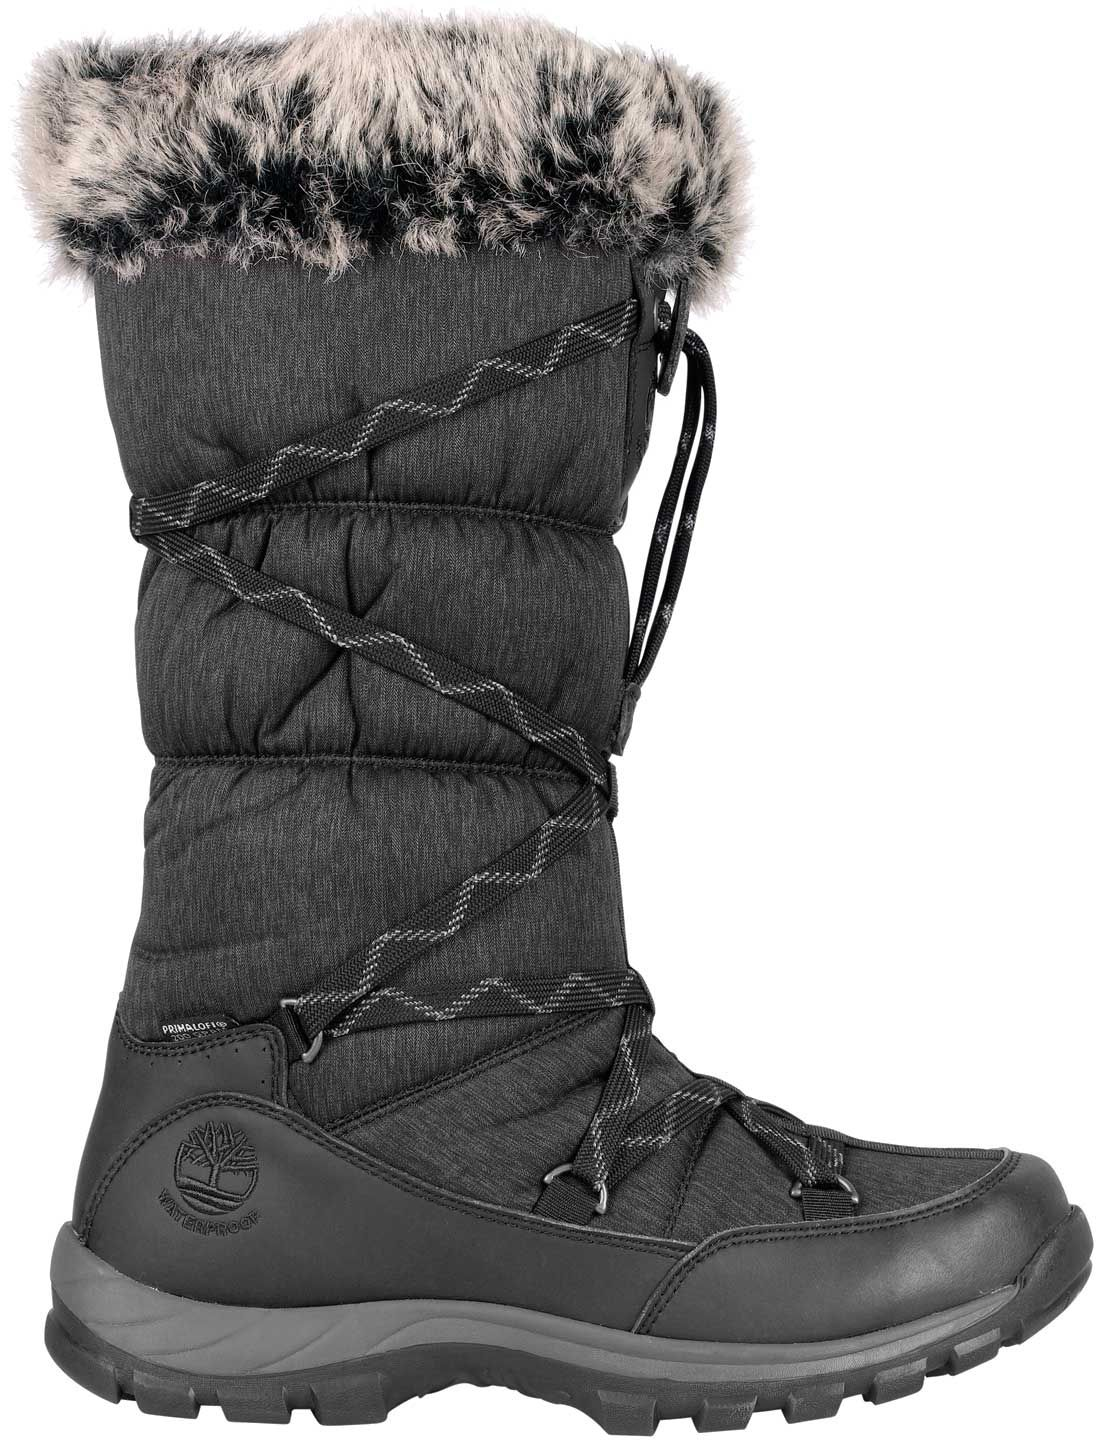 Timberland Women's Chillberg 200g Waterproof Winter Boots. 0:00. 0:00 /  0:00. noImageFound ???